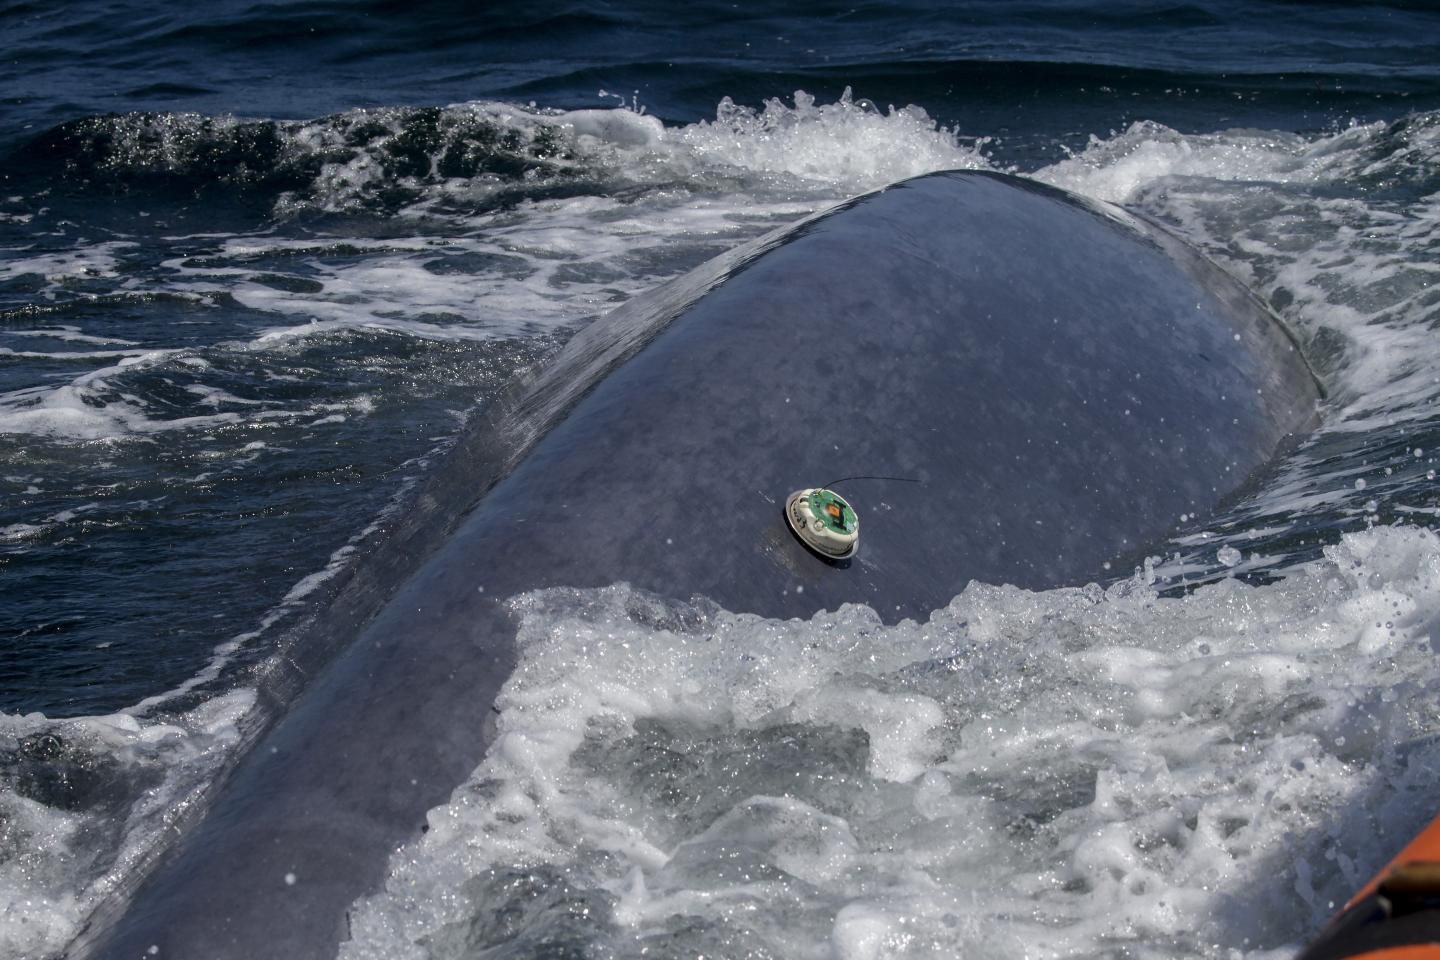 New whale tagging technology has provided new insights into whale life